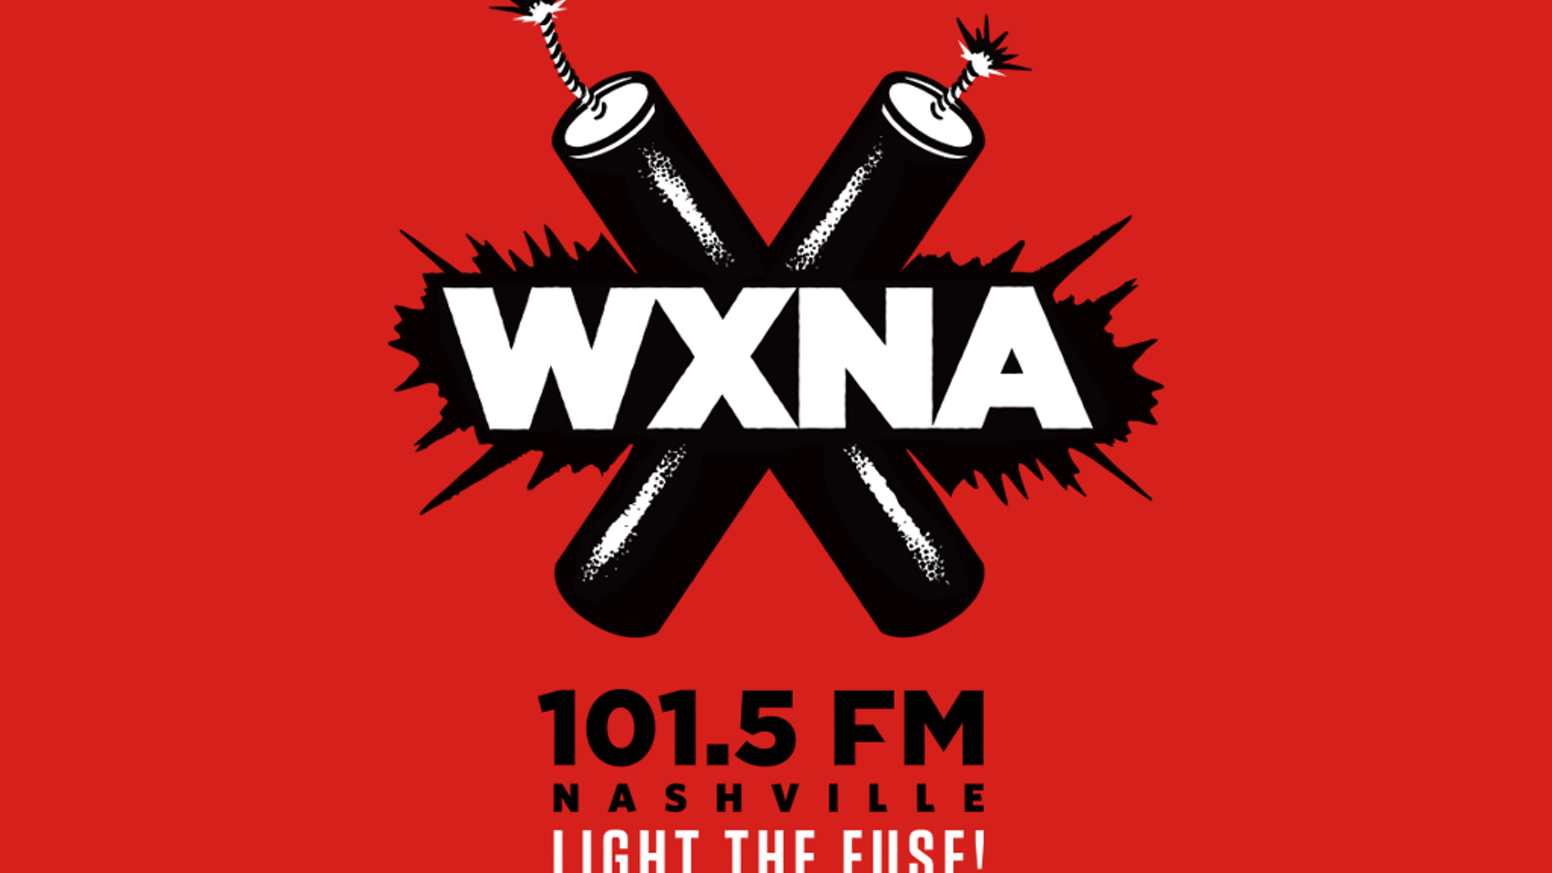 We're building Nashville's next great radio station: WXNA-LPFM, a freeform listener-supported community radio station.